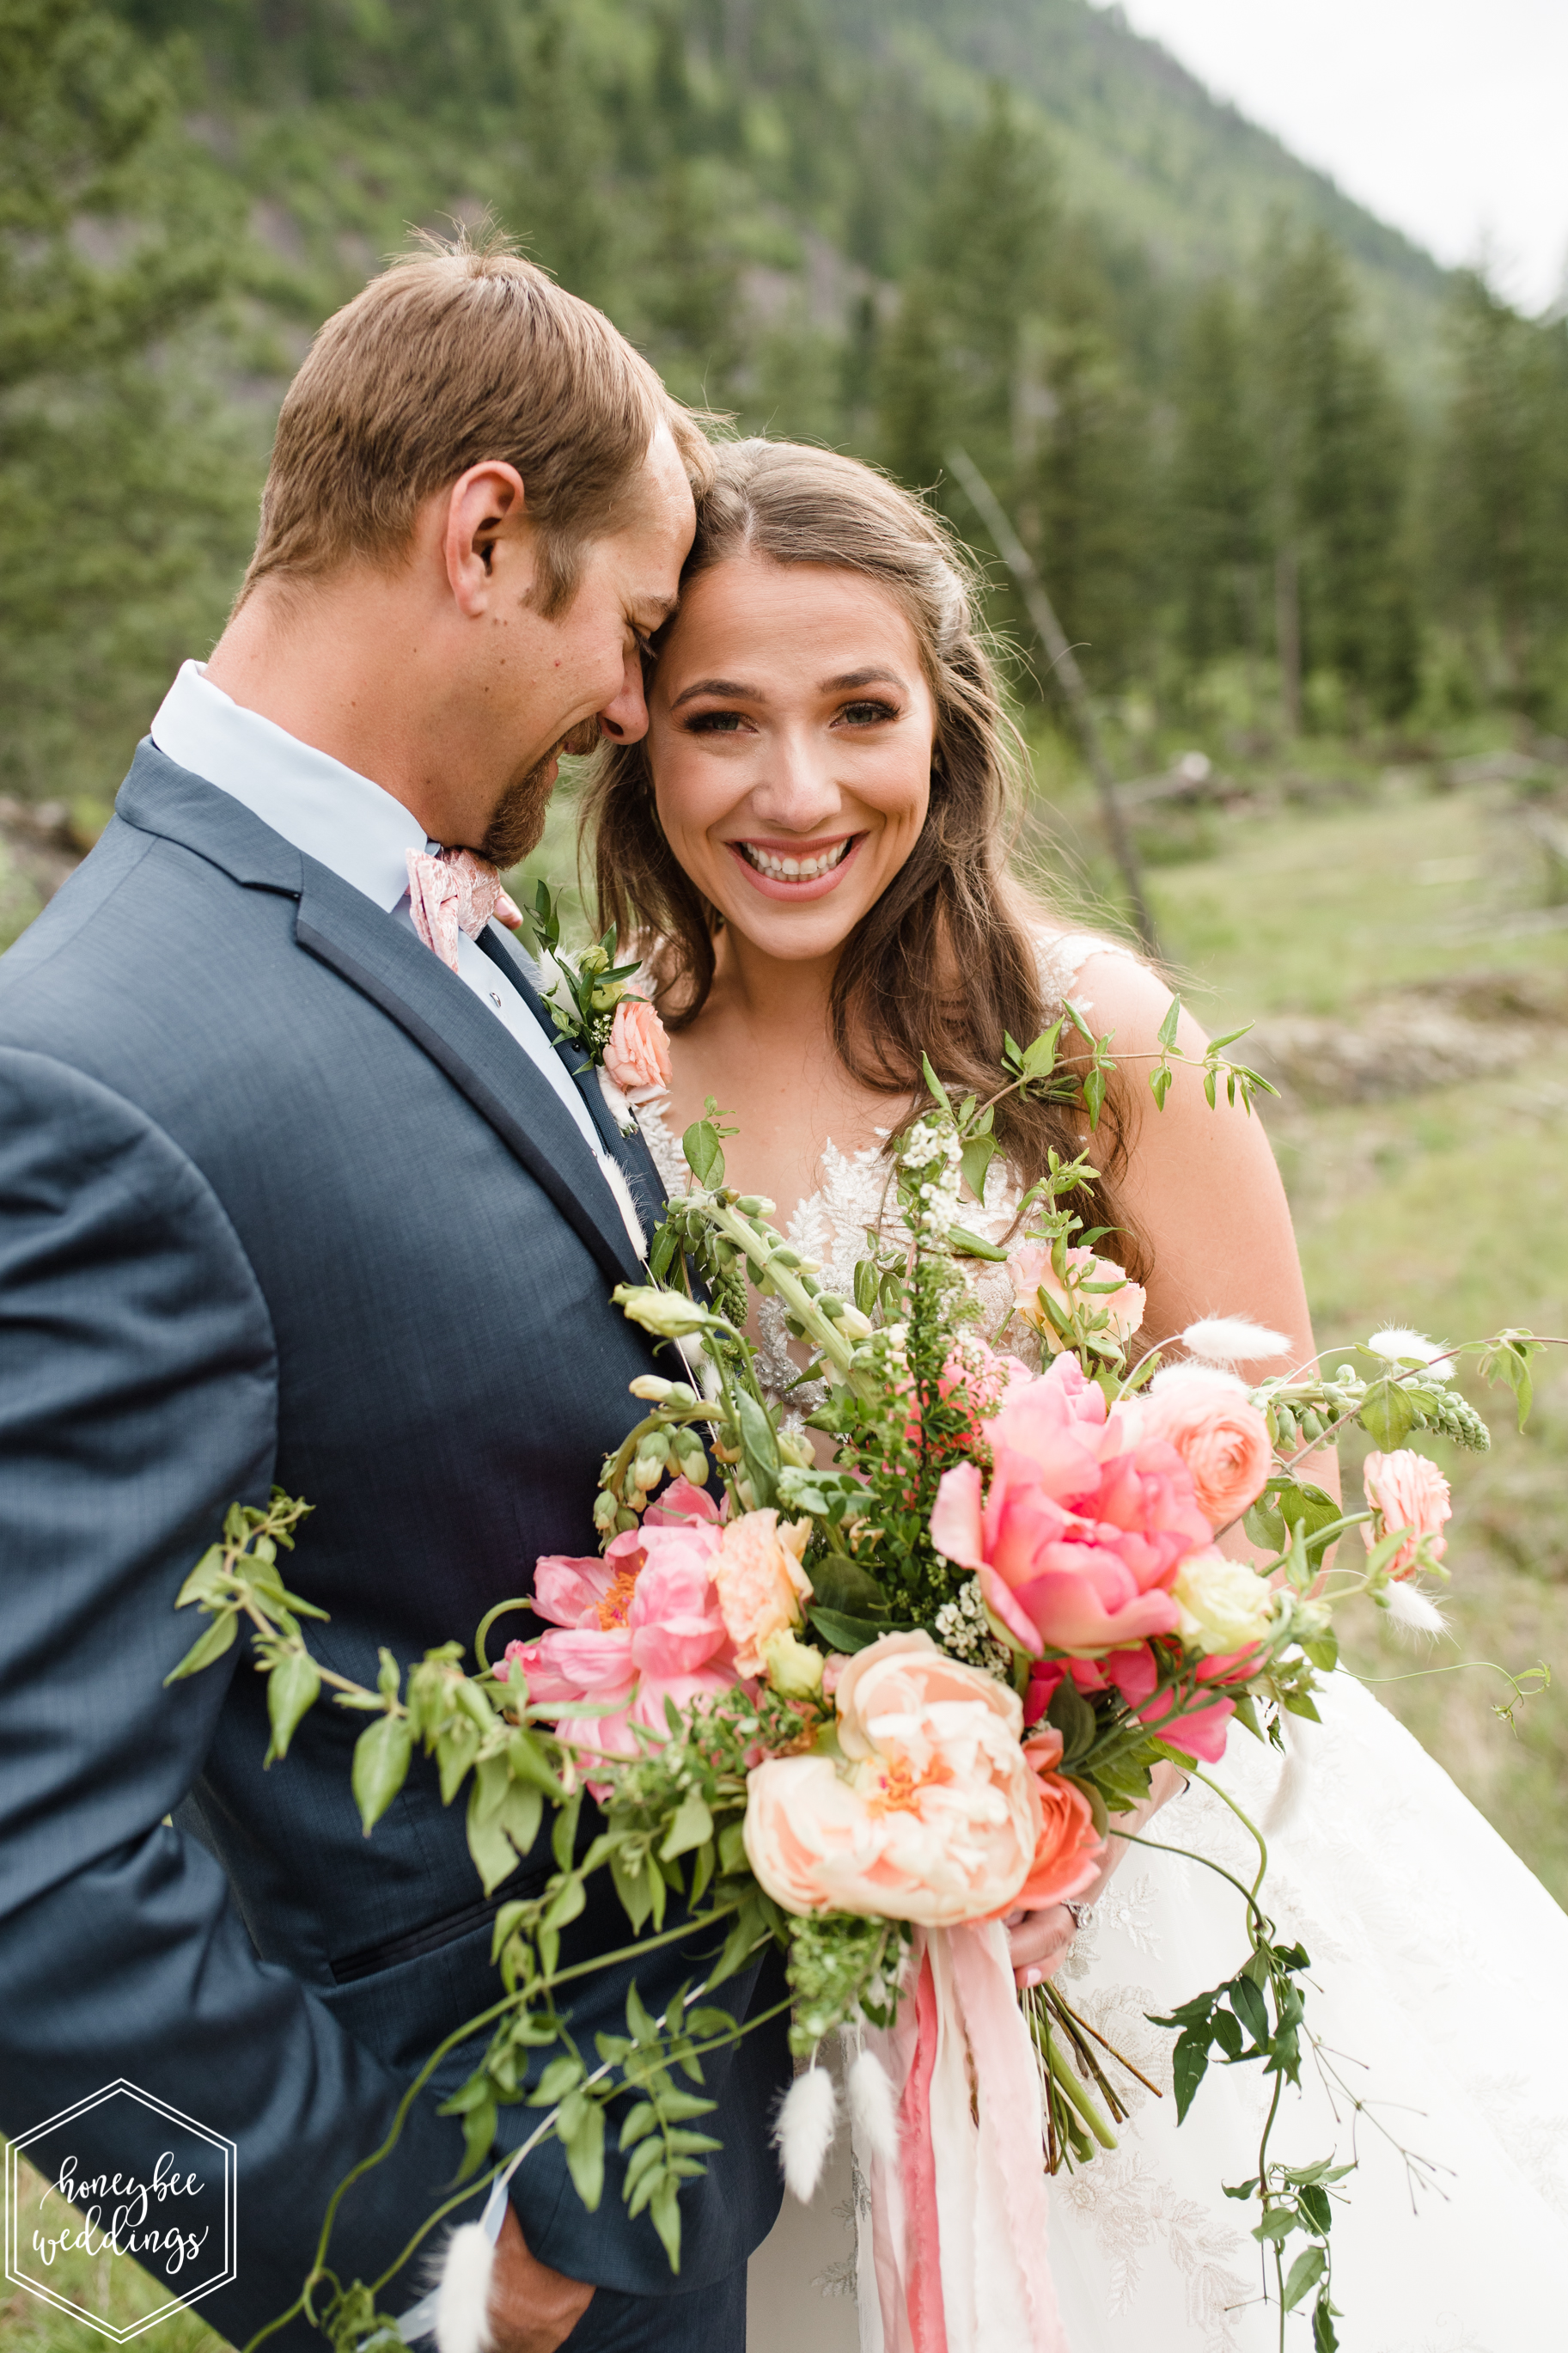 154Coral Mountain Wedding at White Raven_Honeybee Weddings_May 23, 2019-457.jpg